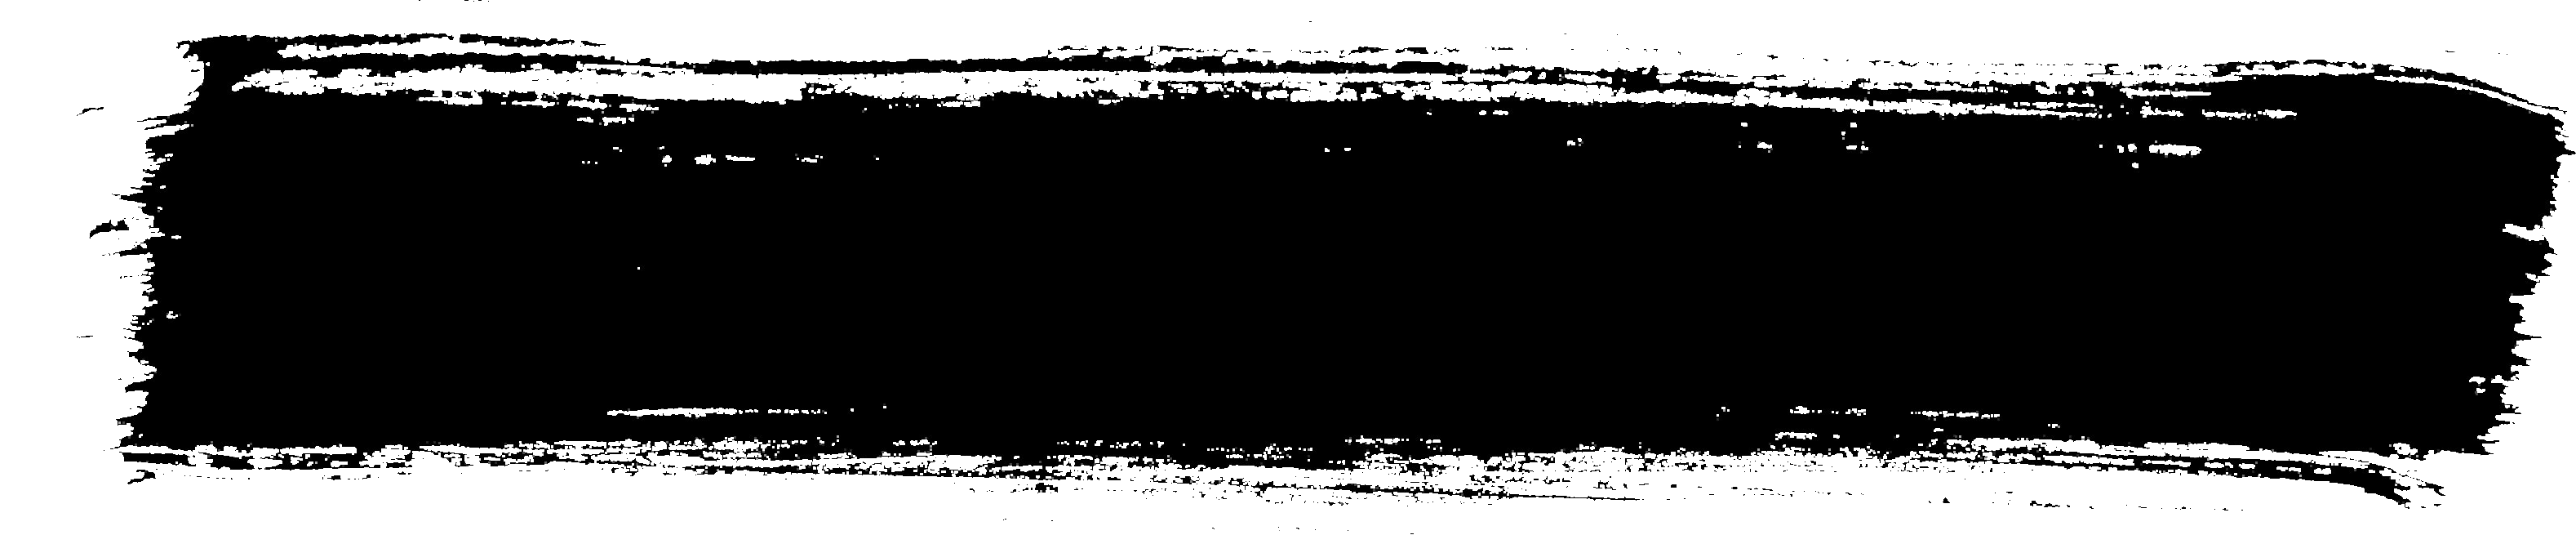 Grunge brush stroke png. Banner transparent vol